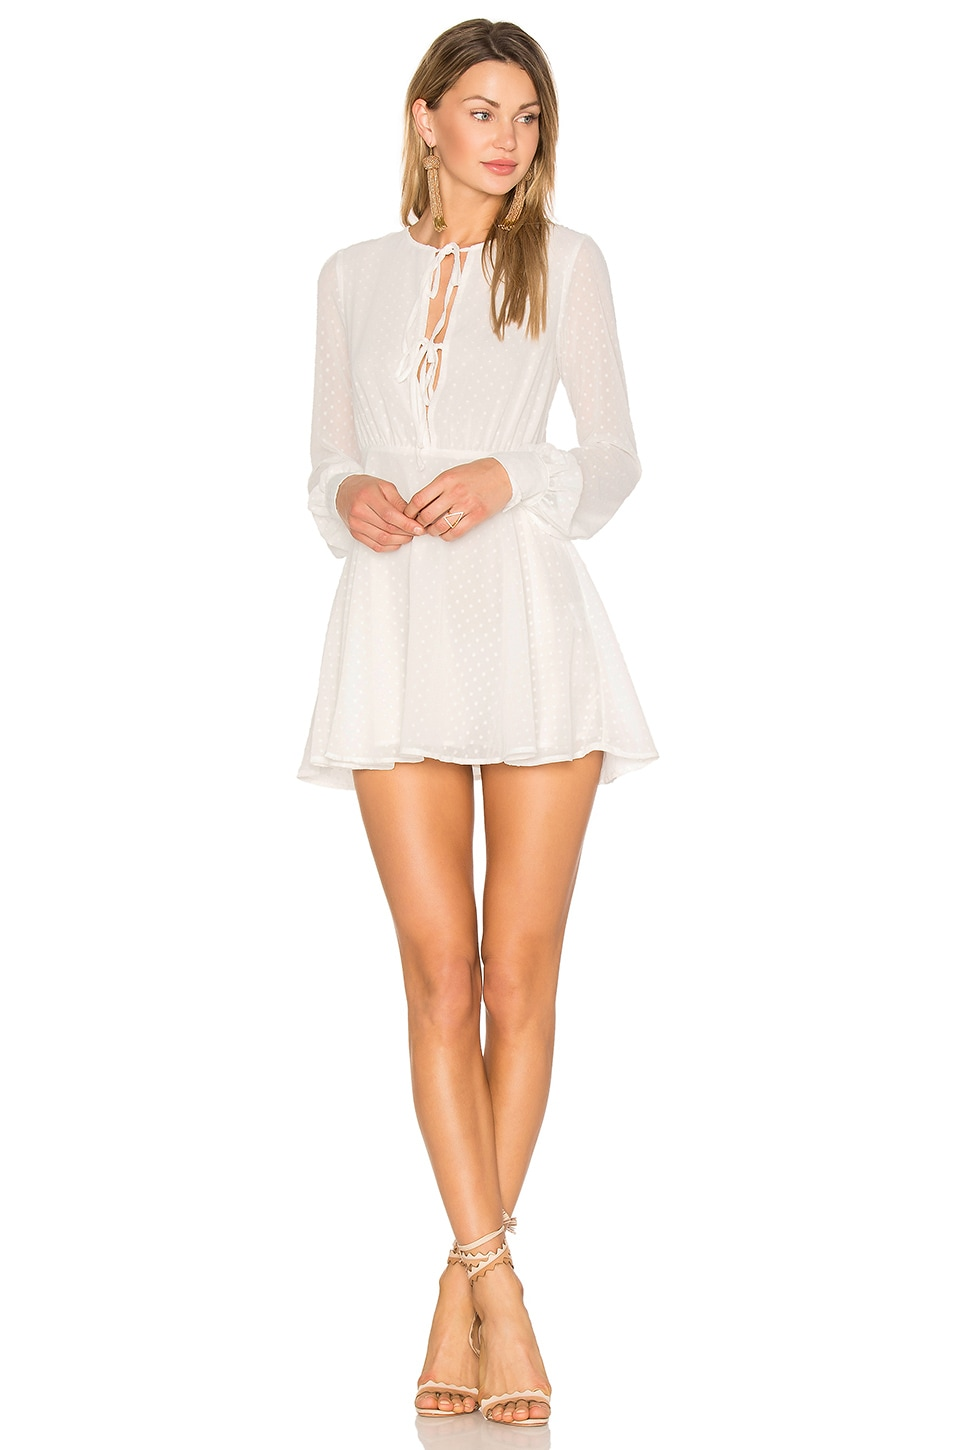 Privacy Please x REVOLVE Easton Dress in White